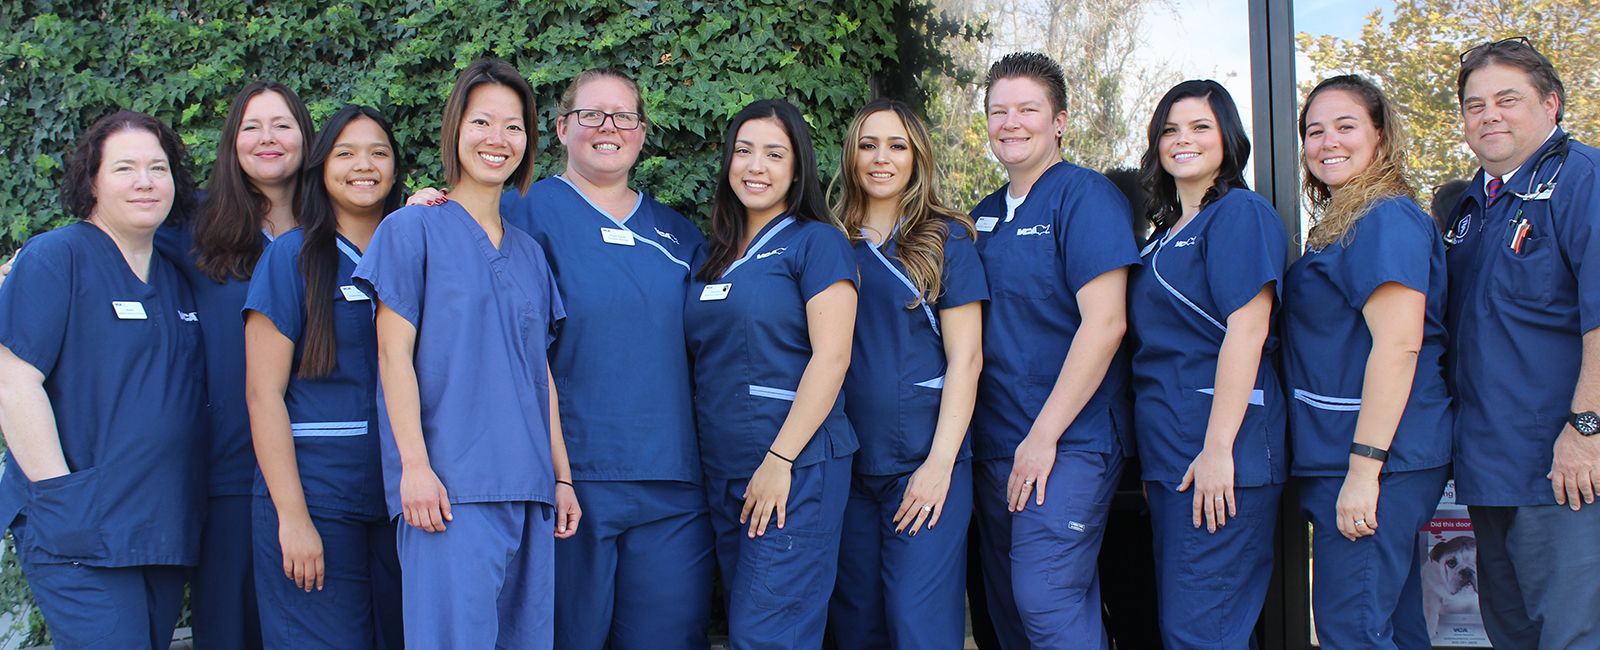 Homepage Team Picture of VCA El Rancho Animal Hospital